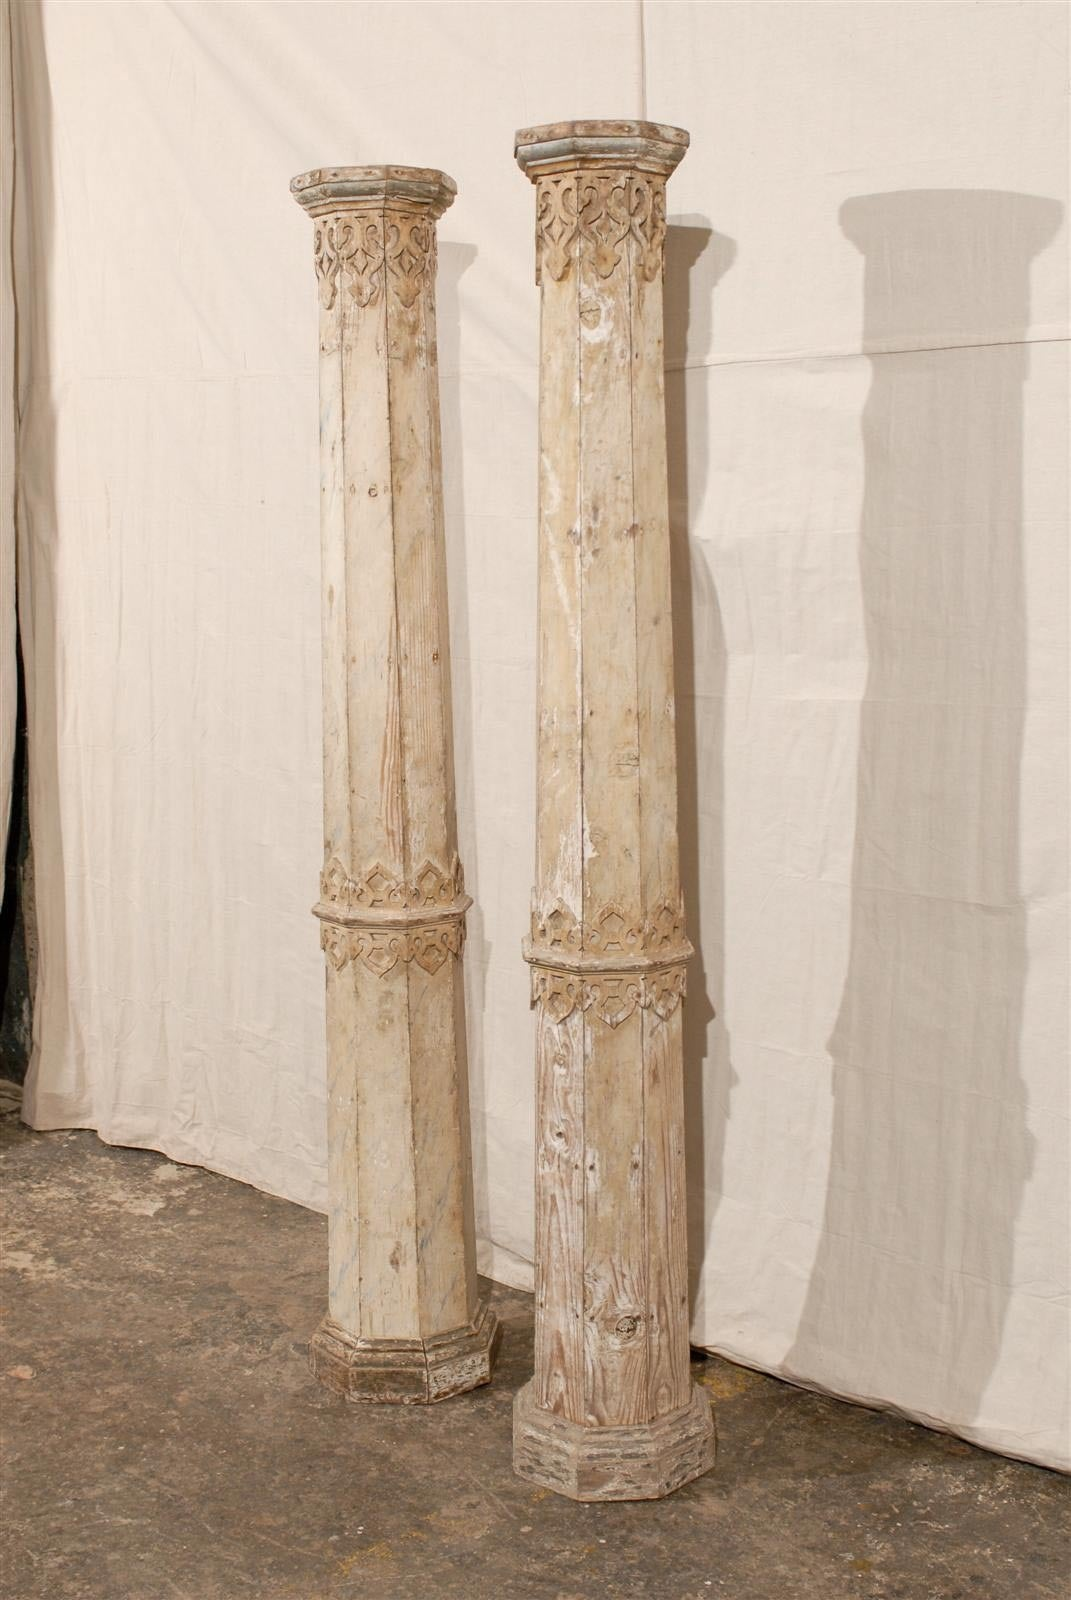 A Pair of 19th Century European Slender Wooden Columns with Delicate Decor 5